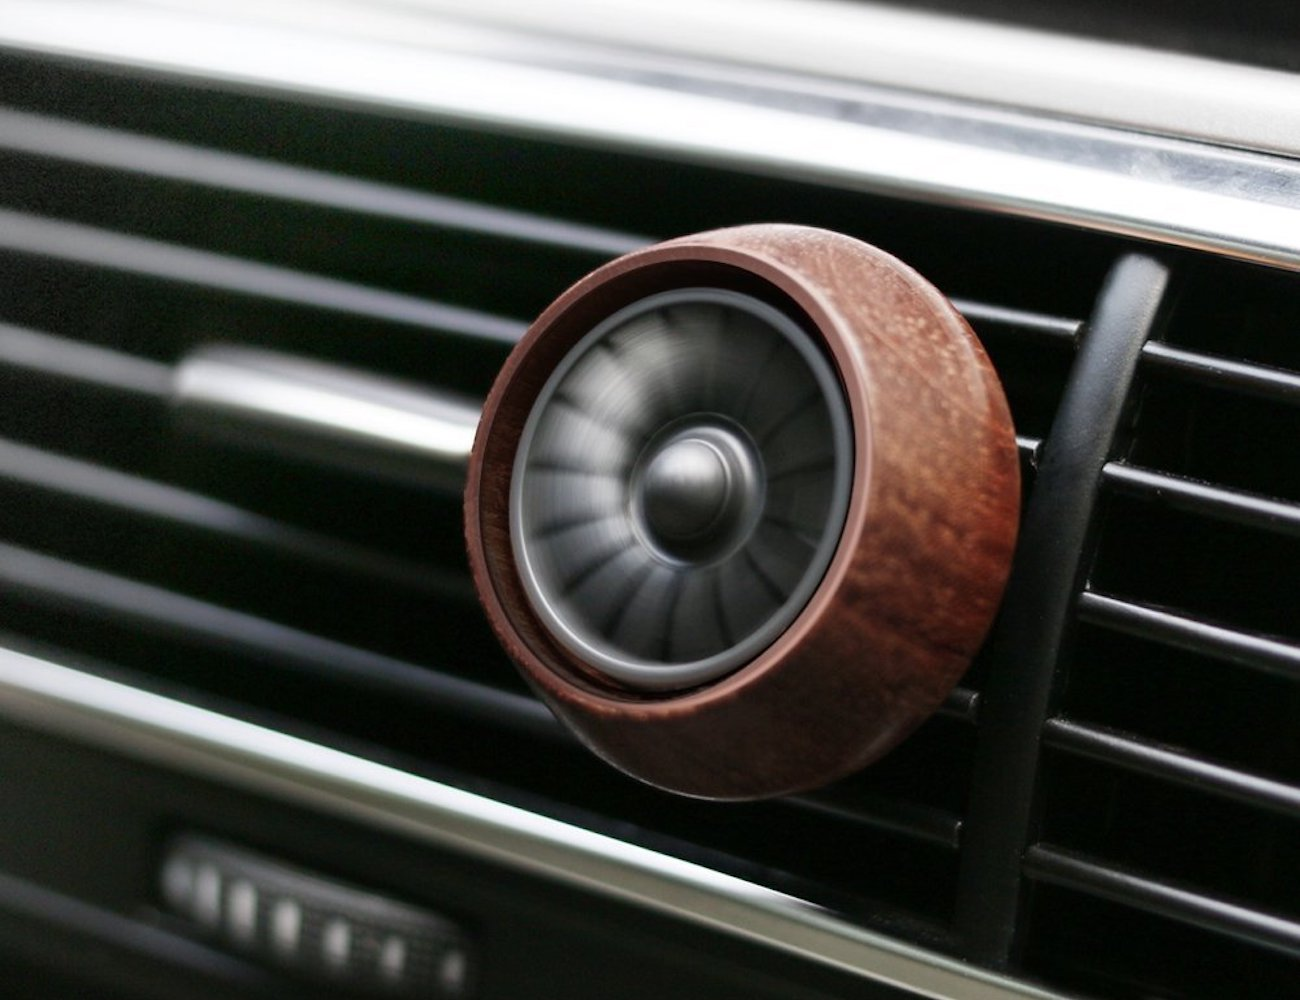 Sununitec SUN-C200 Wooden Car Fragrance Diffuser